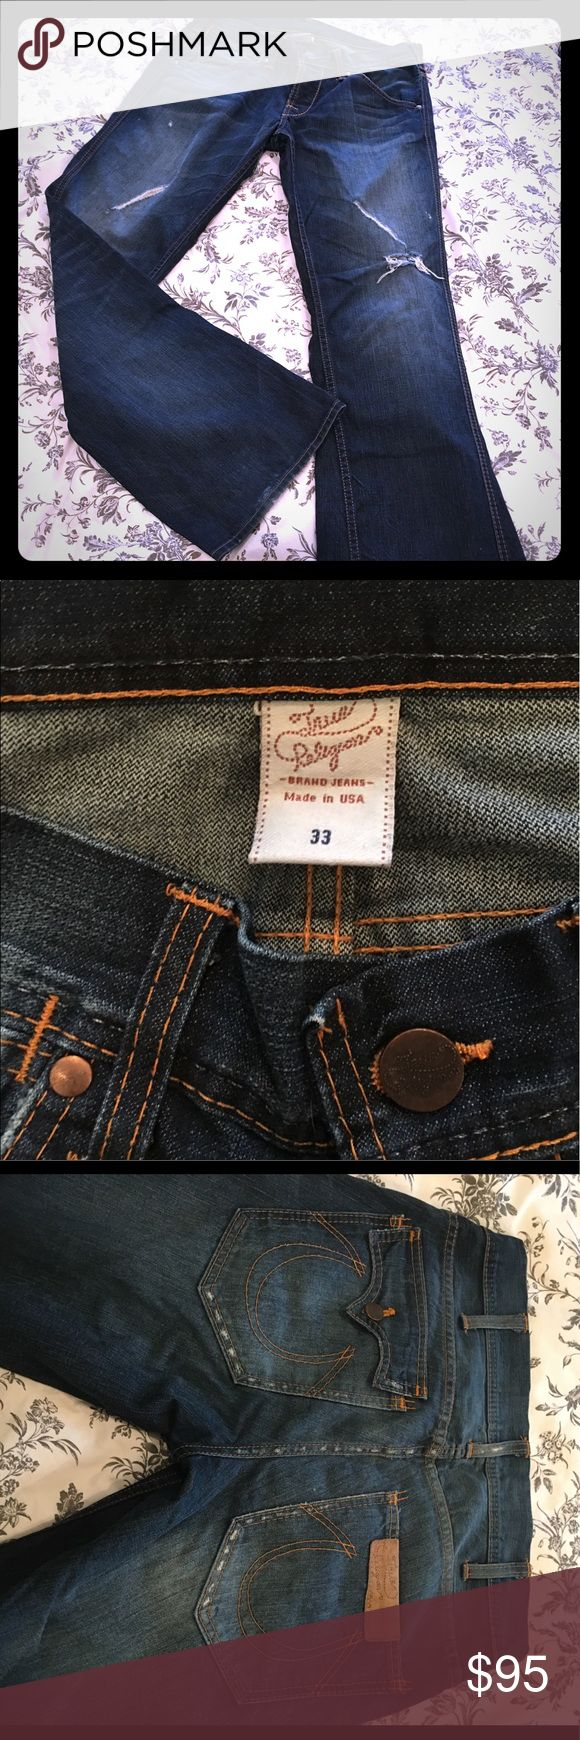 Men's True Religion Jeans  EUC jeans. Nothing wrong and no signs of wear other than the rips for style. Worn only a few times. I'm not sure what the original style name is for these. If I find it I will post. True Religion Jeans Relaxed